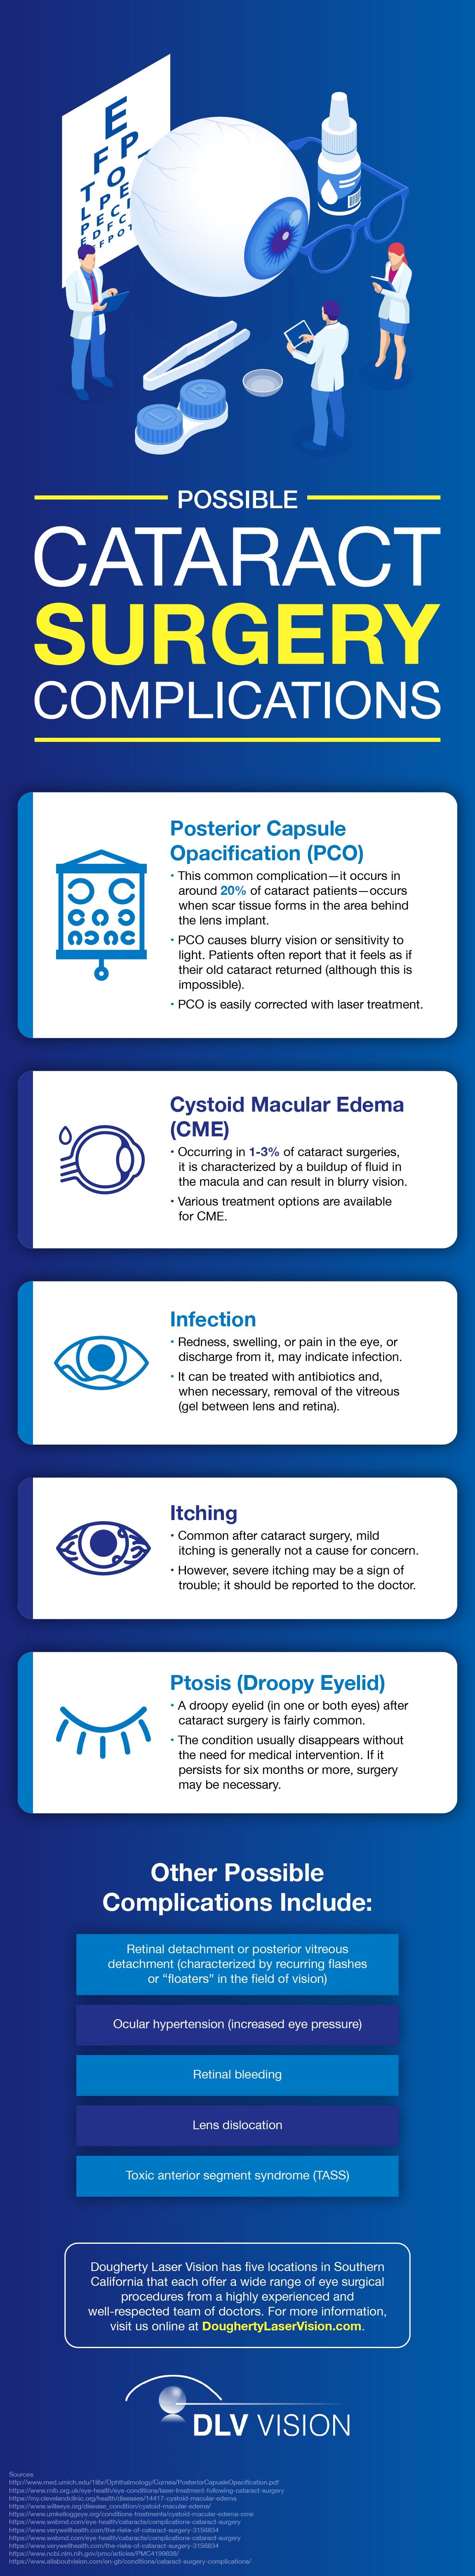 Cataract Surgery Complications infographic